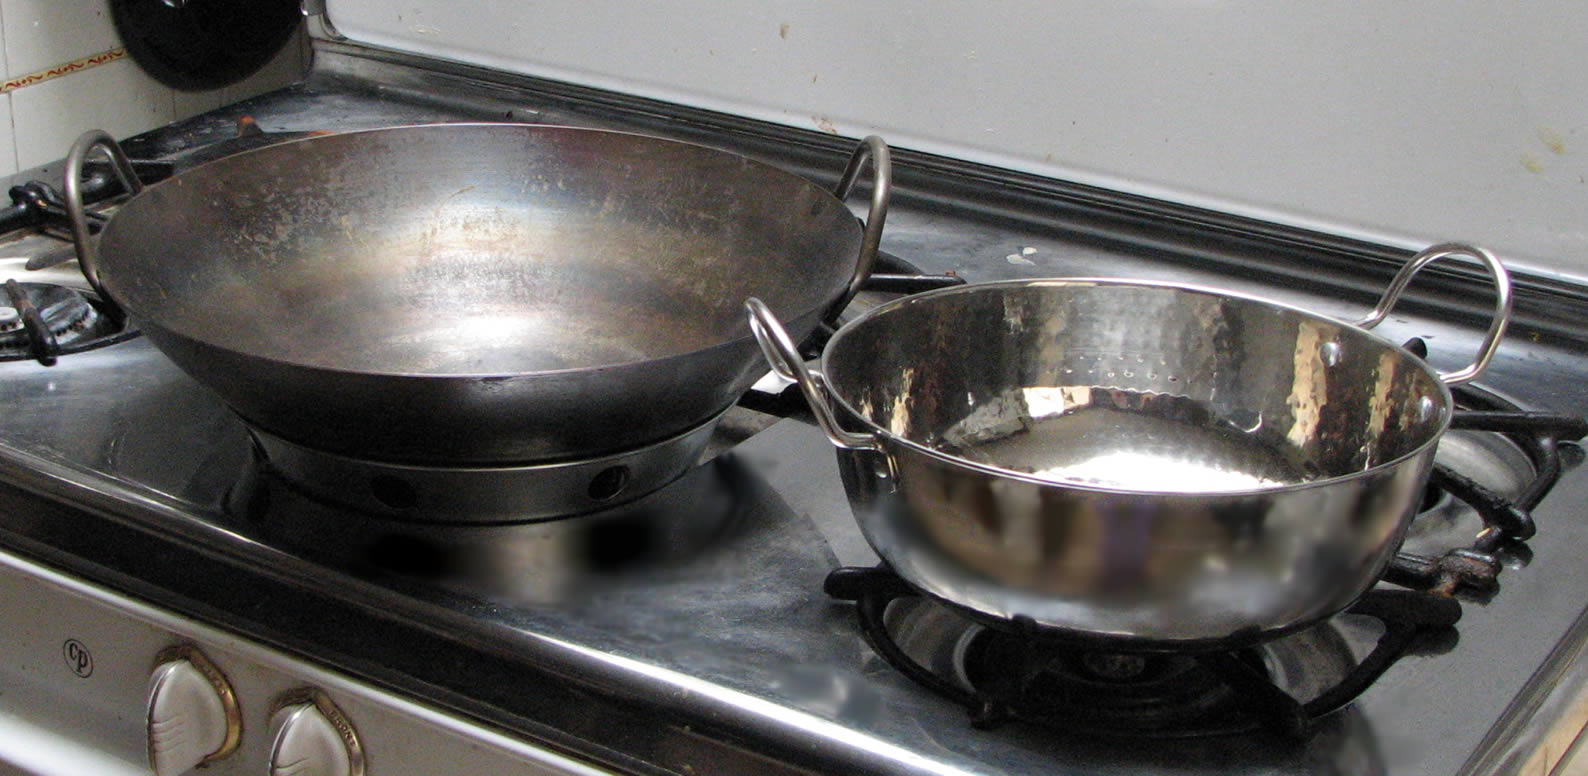 Things I learnt about using a wok on a glass stovetop - Aliette de ...